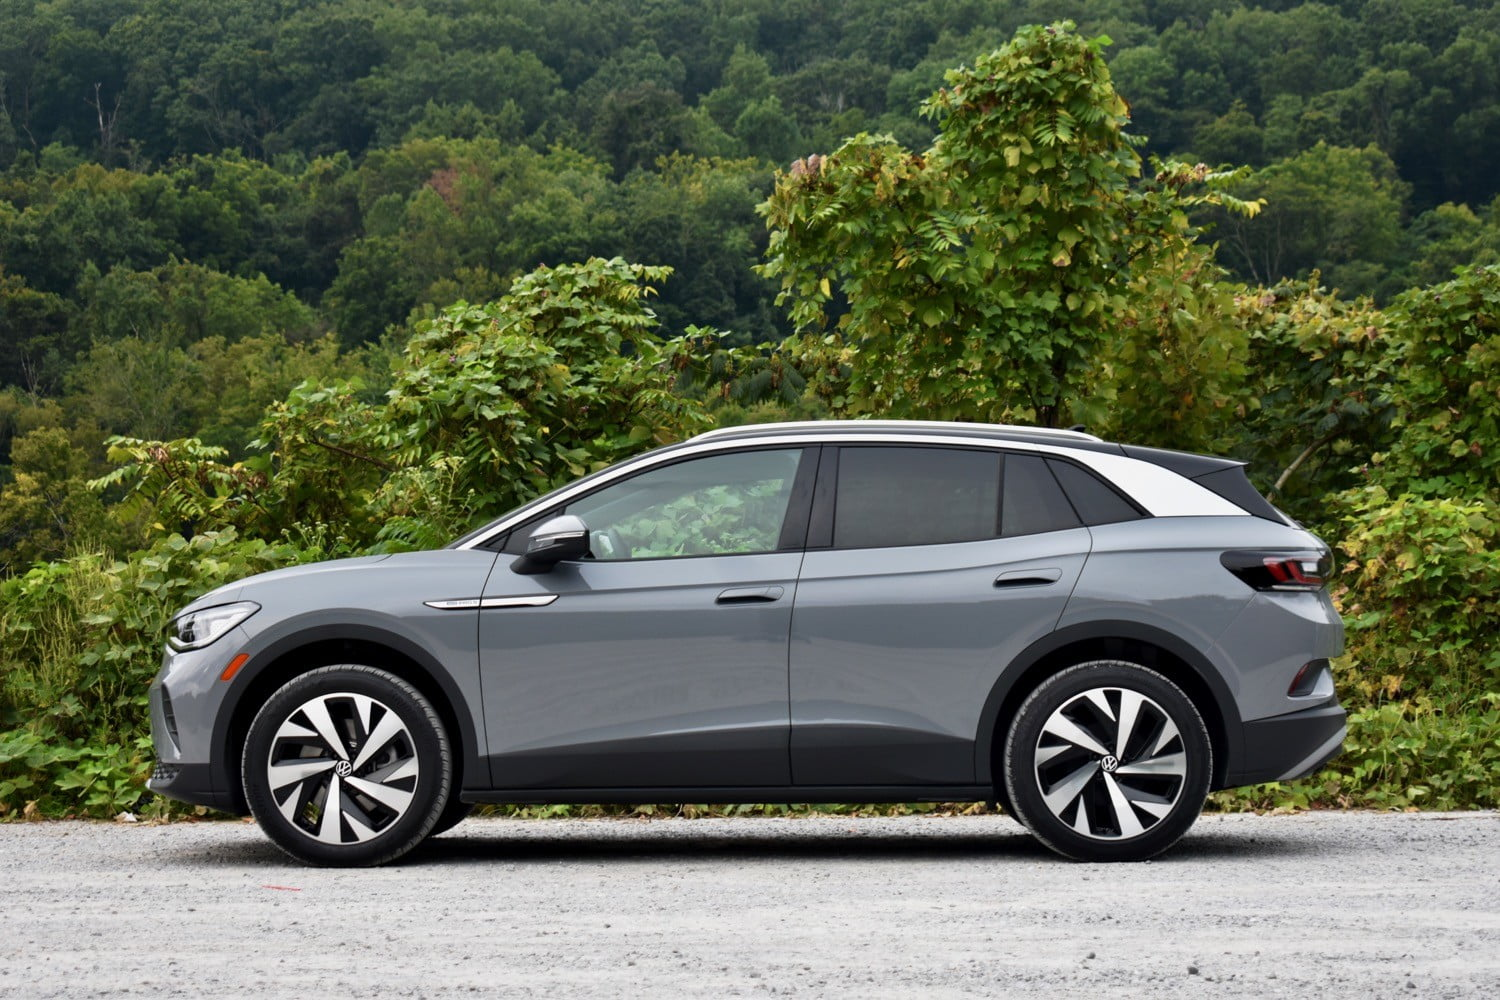 Profile view of the 2021 Volkswagen ID.4 AWD.